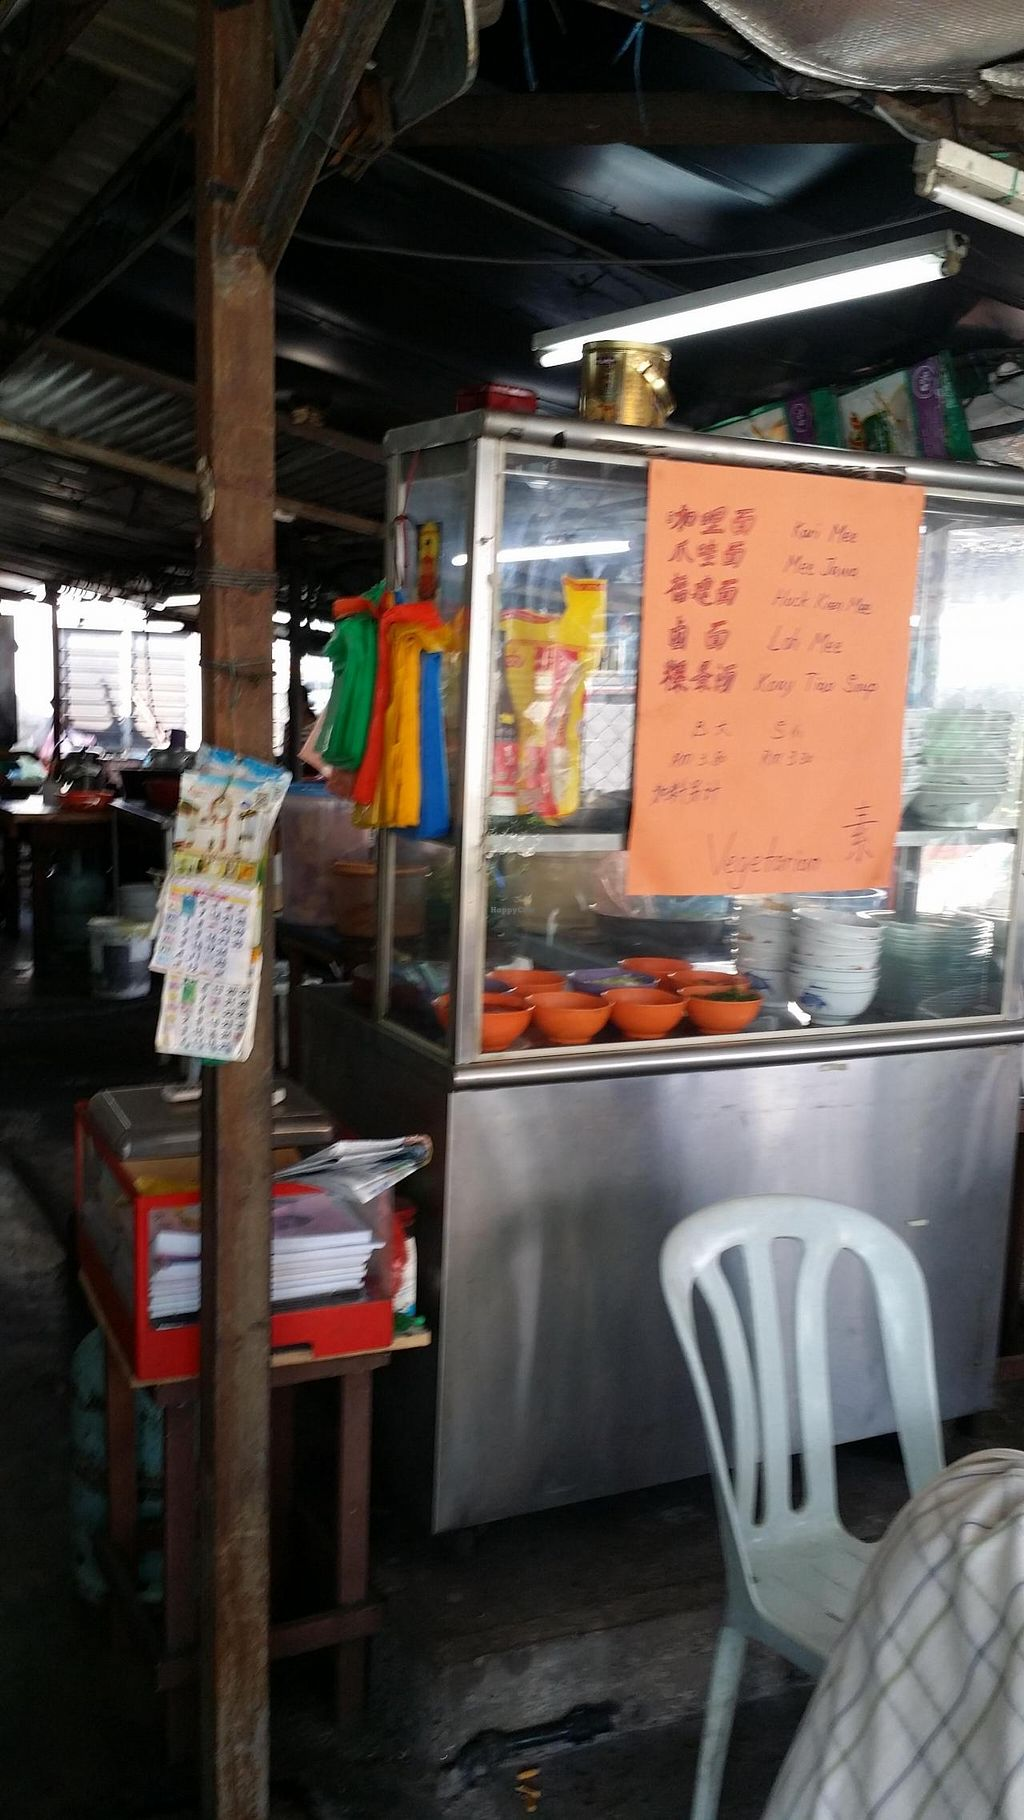 """Photo of Por Eng - Vegeterian Stall  by <a href=""""/members/profile/walter007"""">walter007</a> <br/>Shop <br/> April 29, 2014  - <a href='/contact/abuse/image/25976/68914'>Report</a>"""